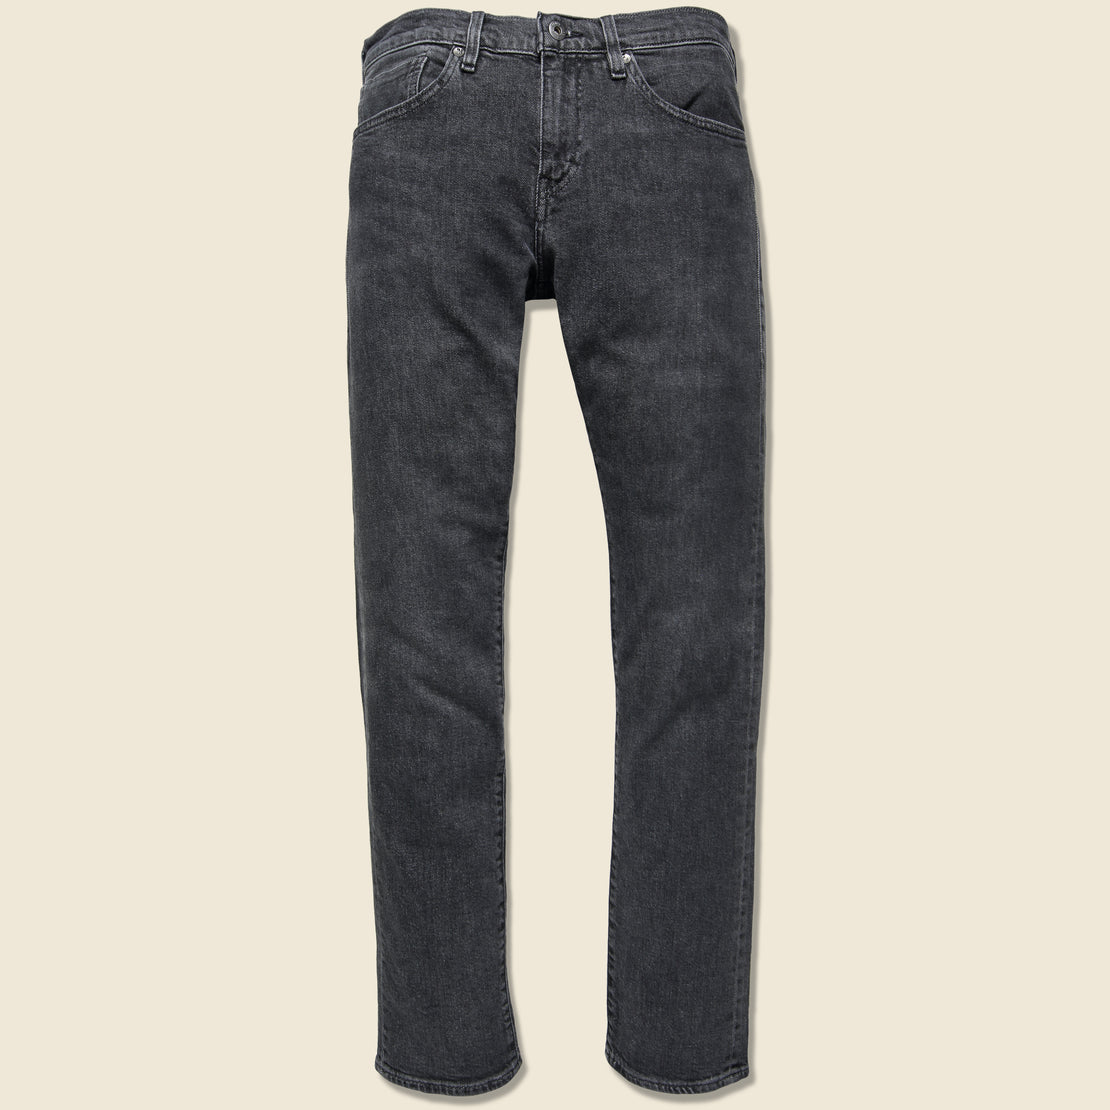 Levis Made & Crafted 511 Slim Fit Jean - Crucible